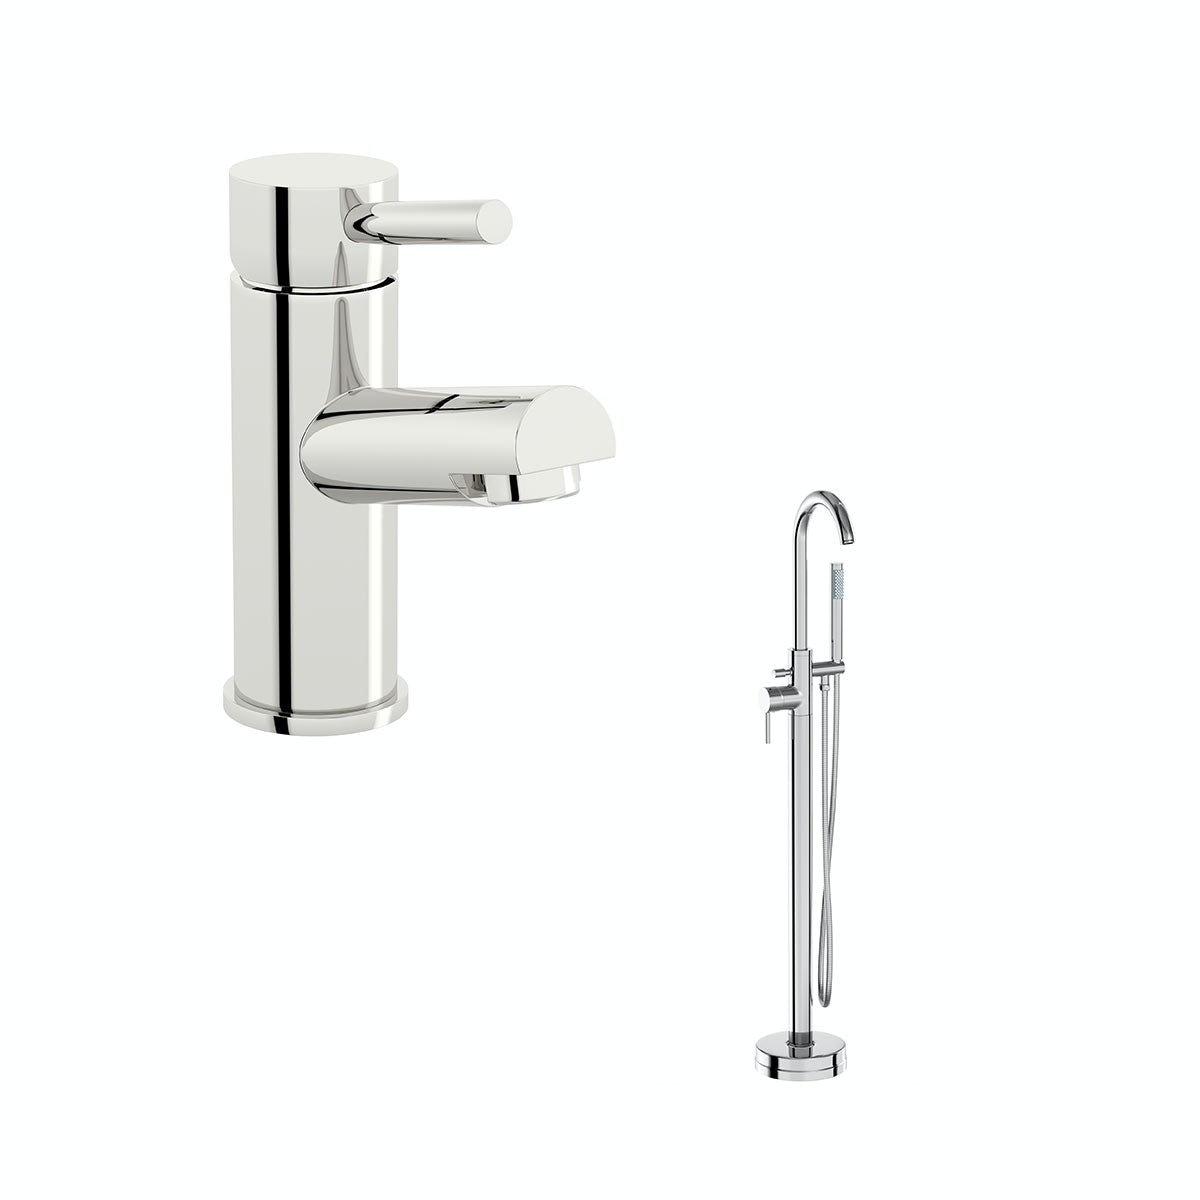 Orchard Wharfe basin and bath shower tap standpipe pack